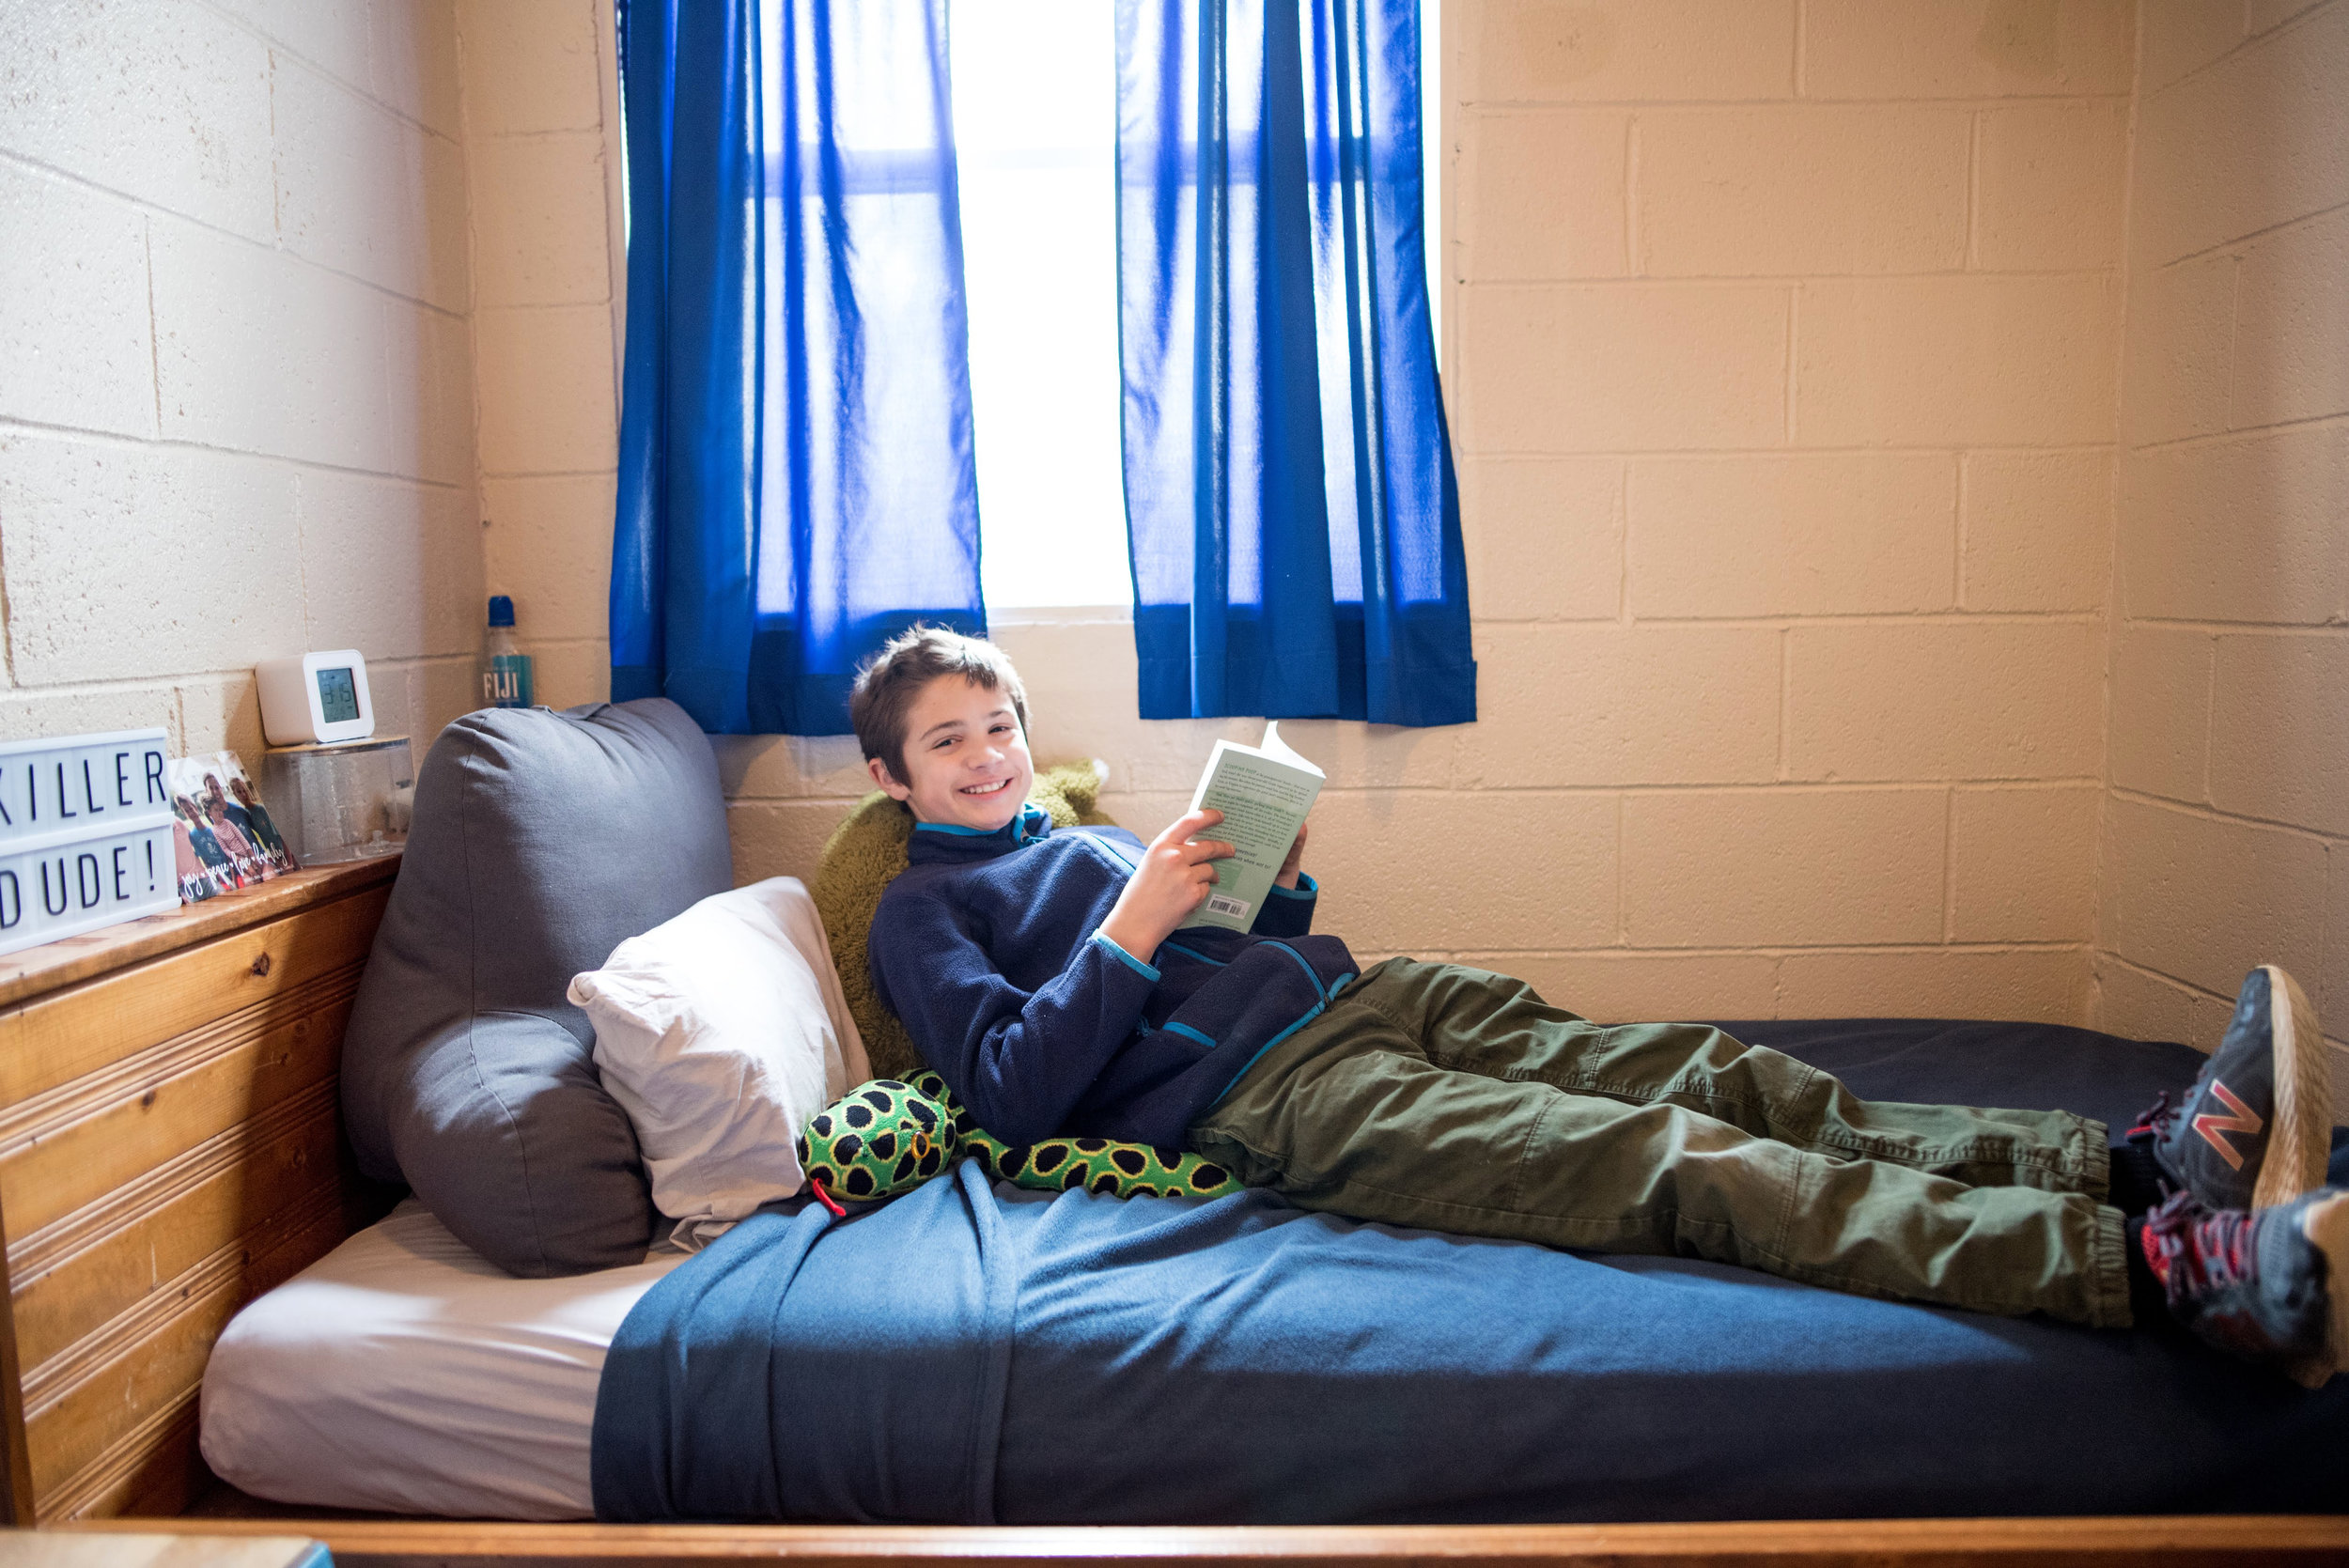 Oakland School's boarding program gives students a home away from home.